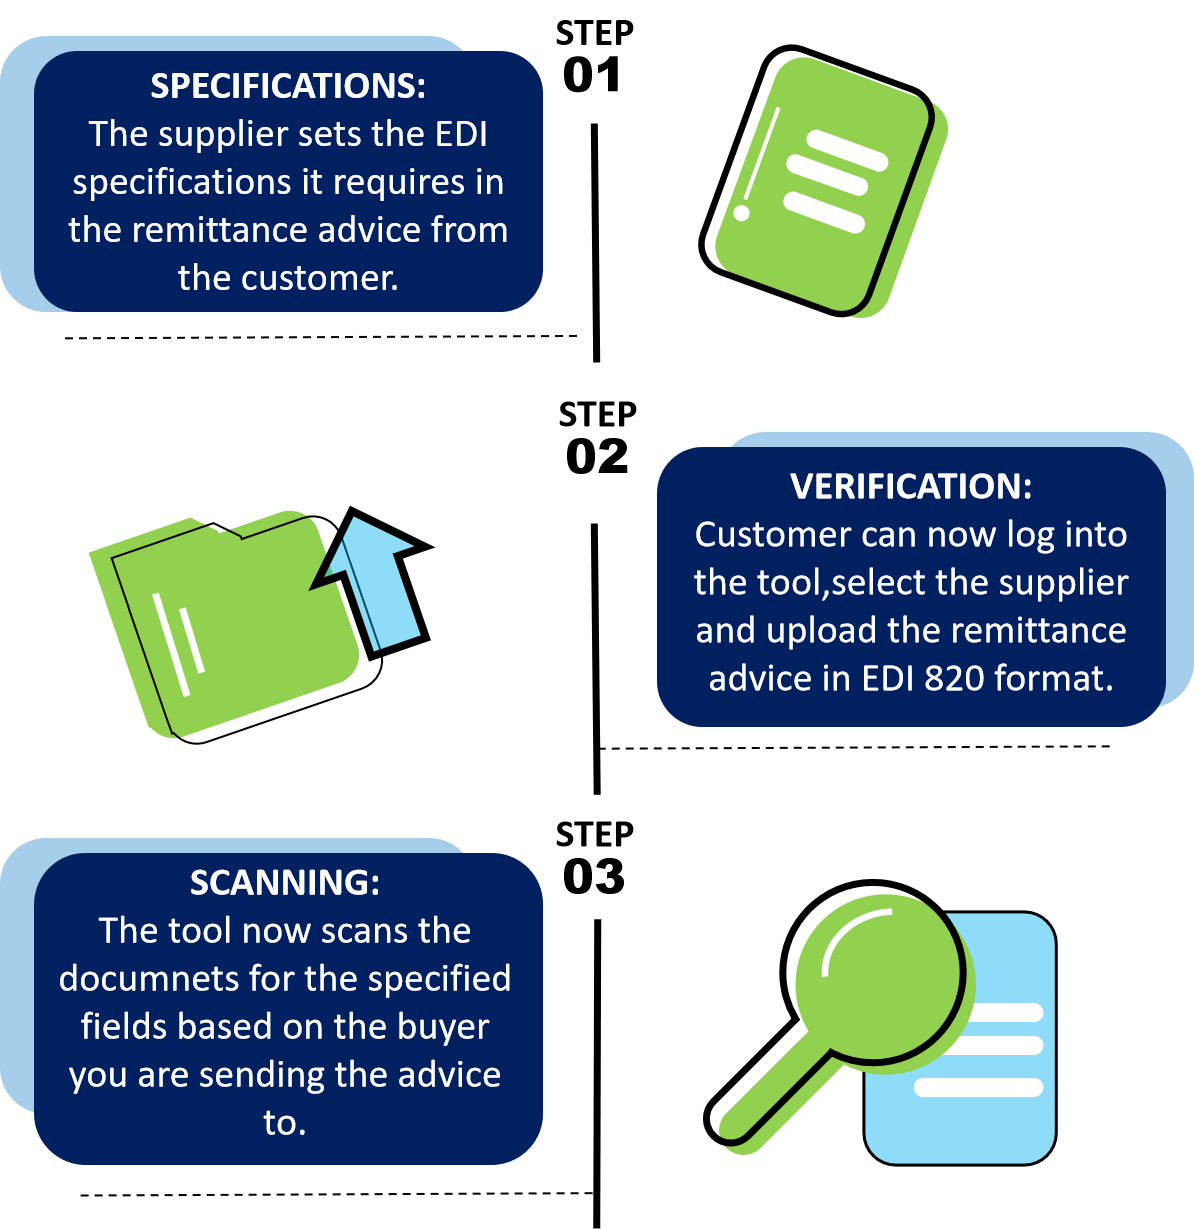 EDI Validation Overview: Specifications, Benefits and Scanning